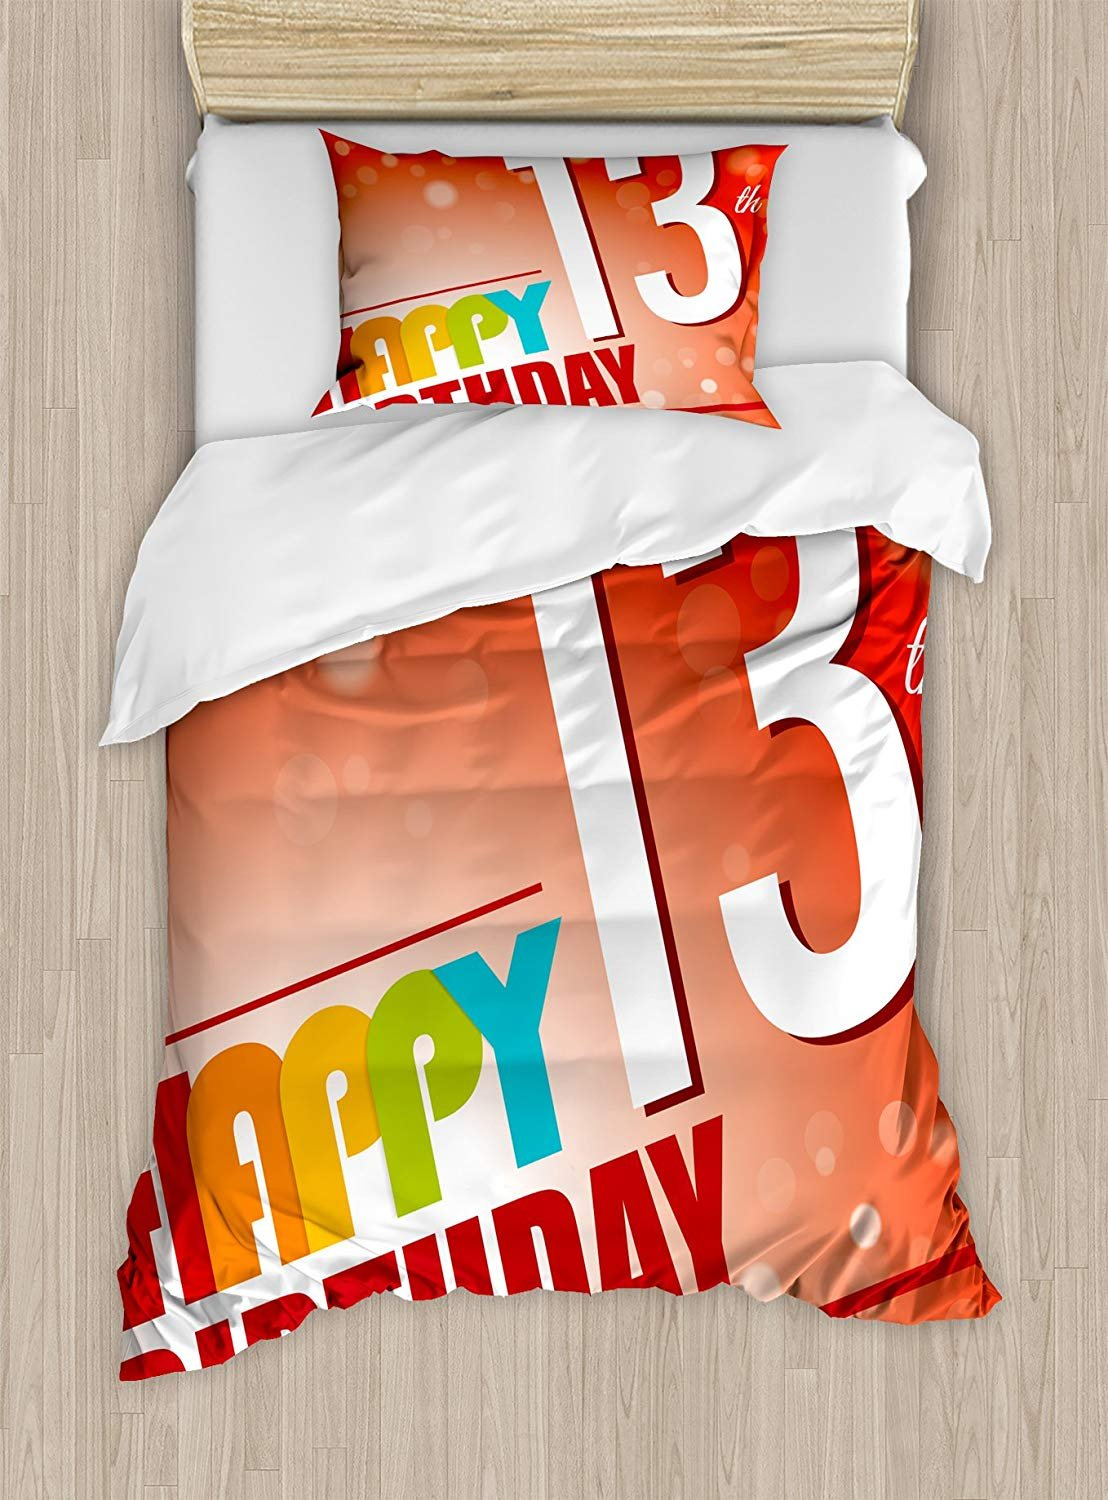 Twin XL Extra Long Bedding Set,13th Birthday Duvet Cover Set,Retro Style Teenage Party Invitation Graphic Design with Bokeh Effect Rays,Cosy House Collection 4 Piece Bedding Sets